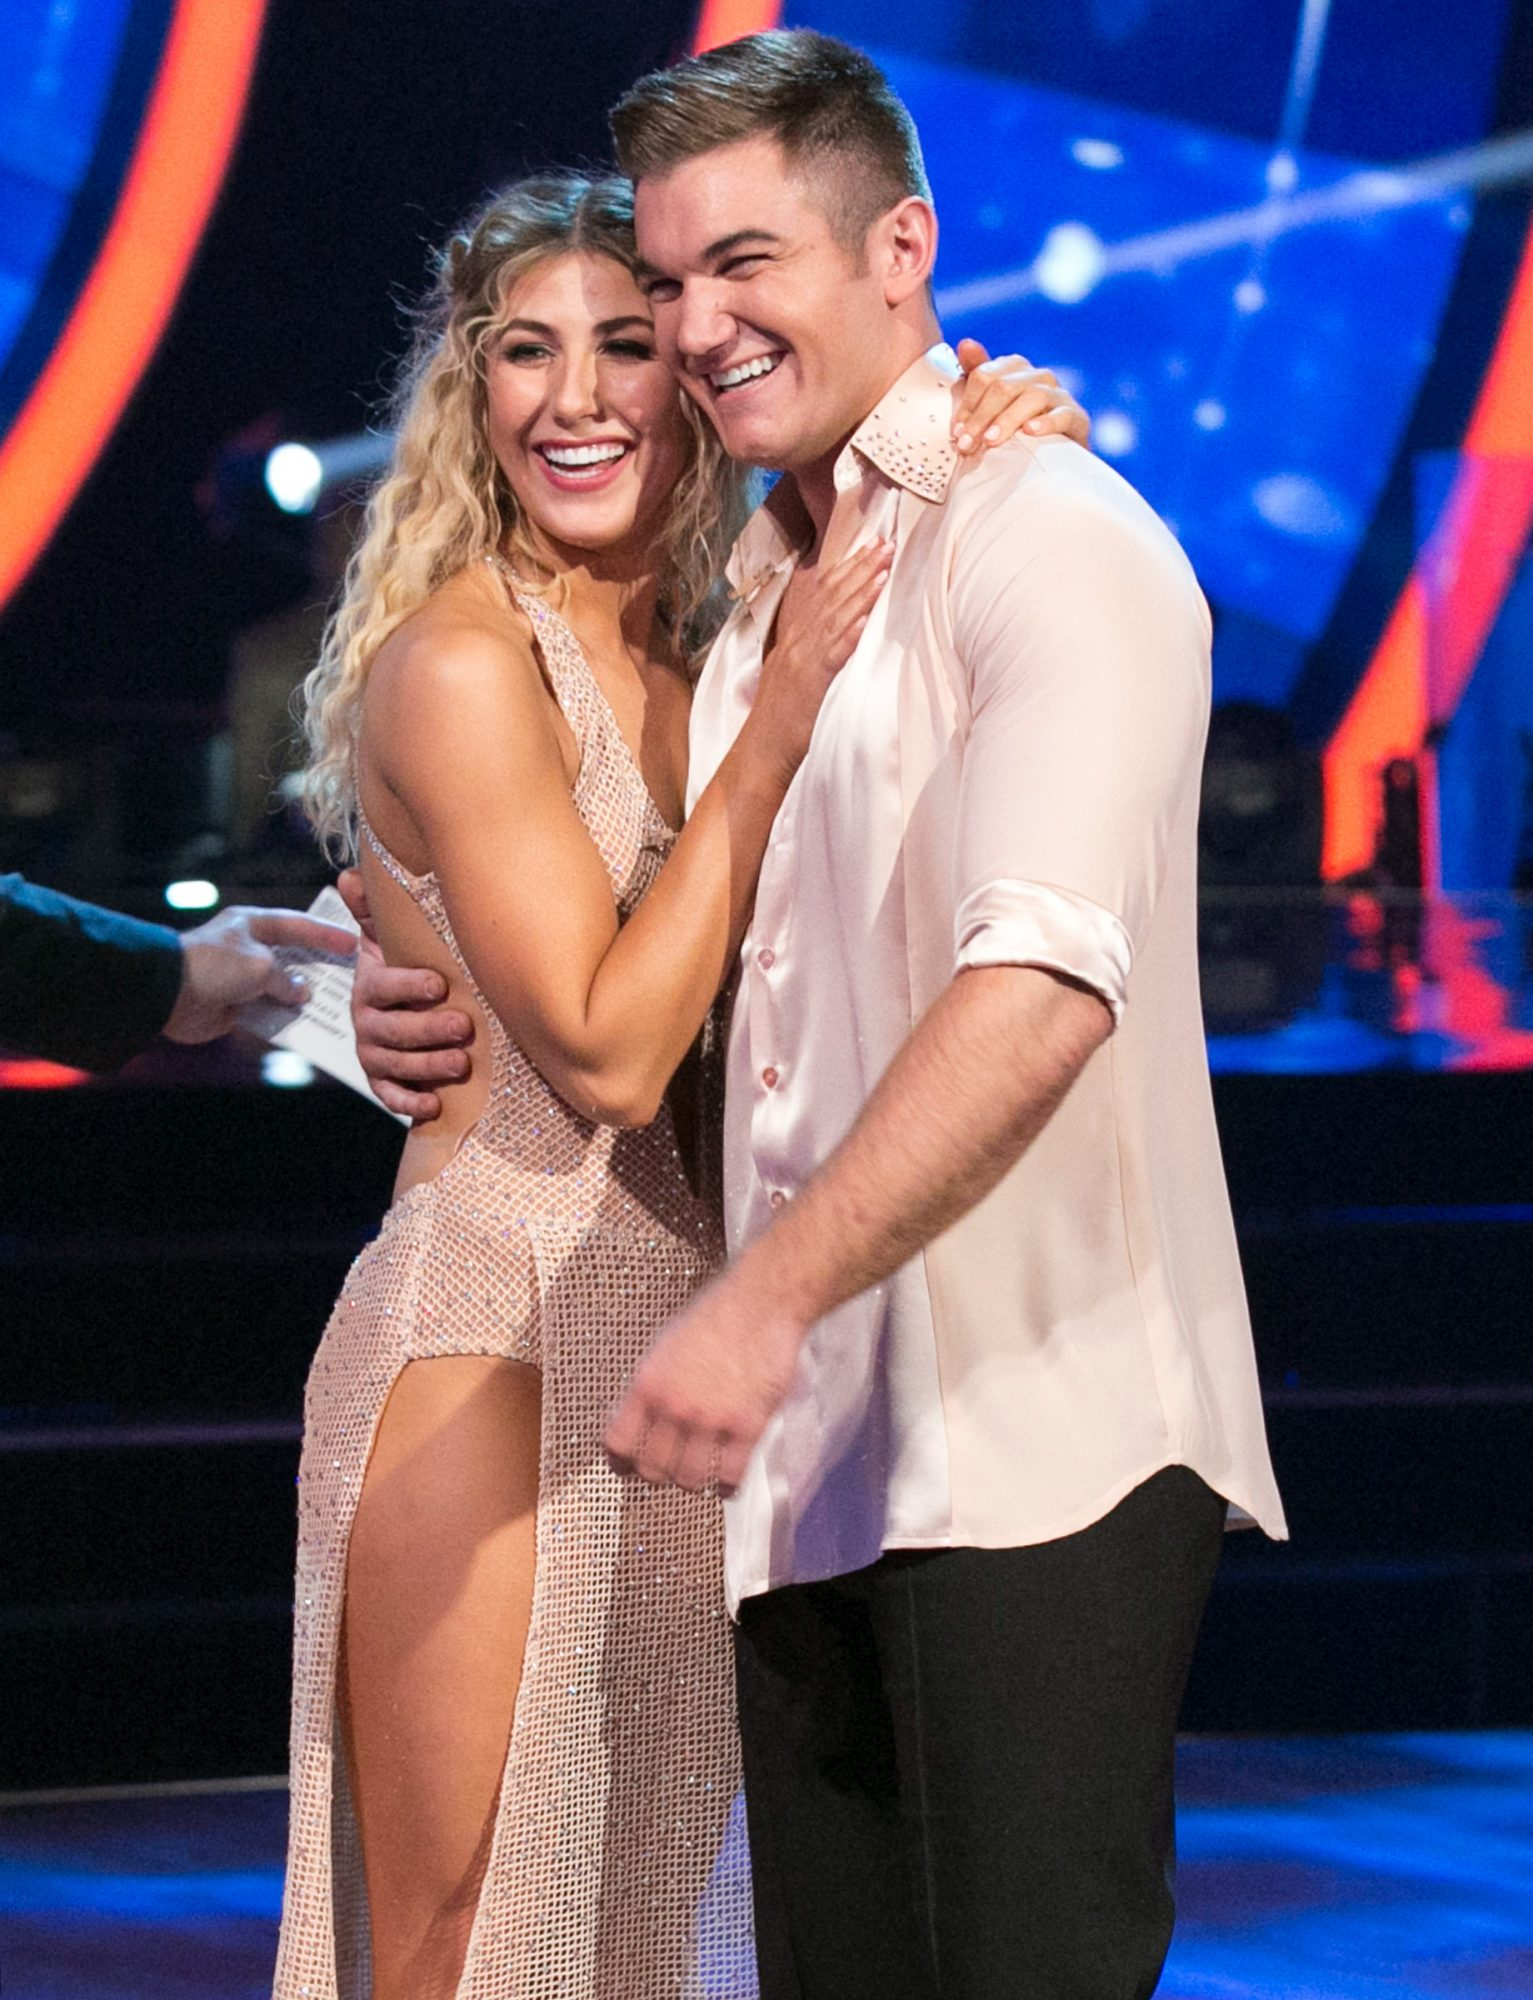 Alek Skarlatos Dancing with the Stars